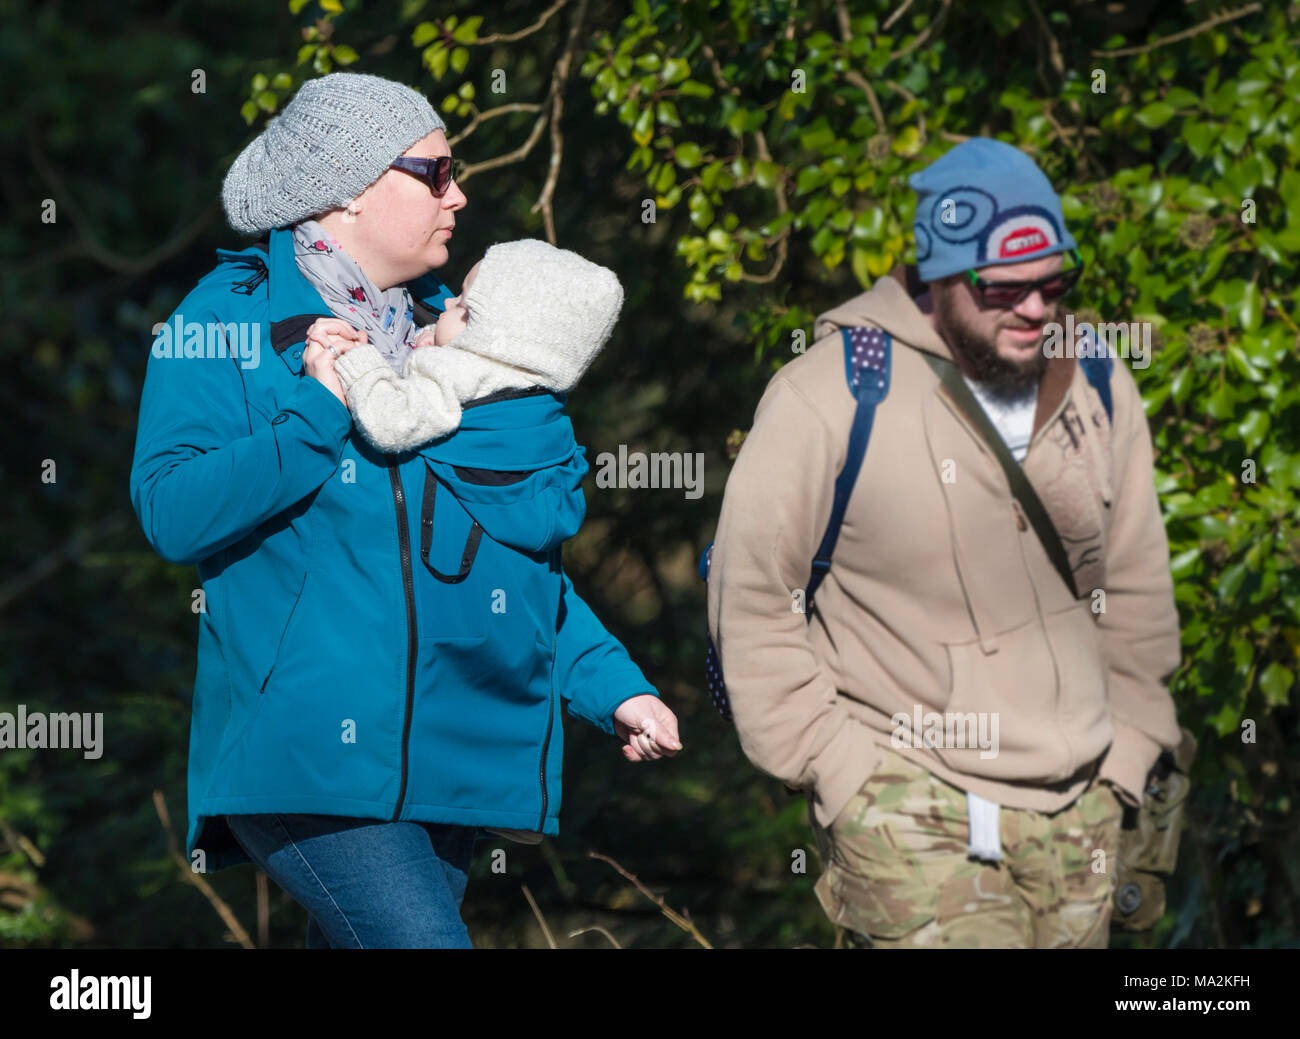 A Couple Walking In Winter With The Woman Carrying A Baby In A